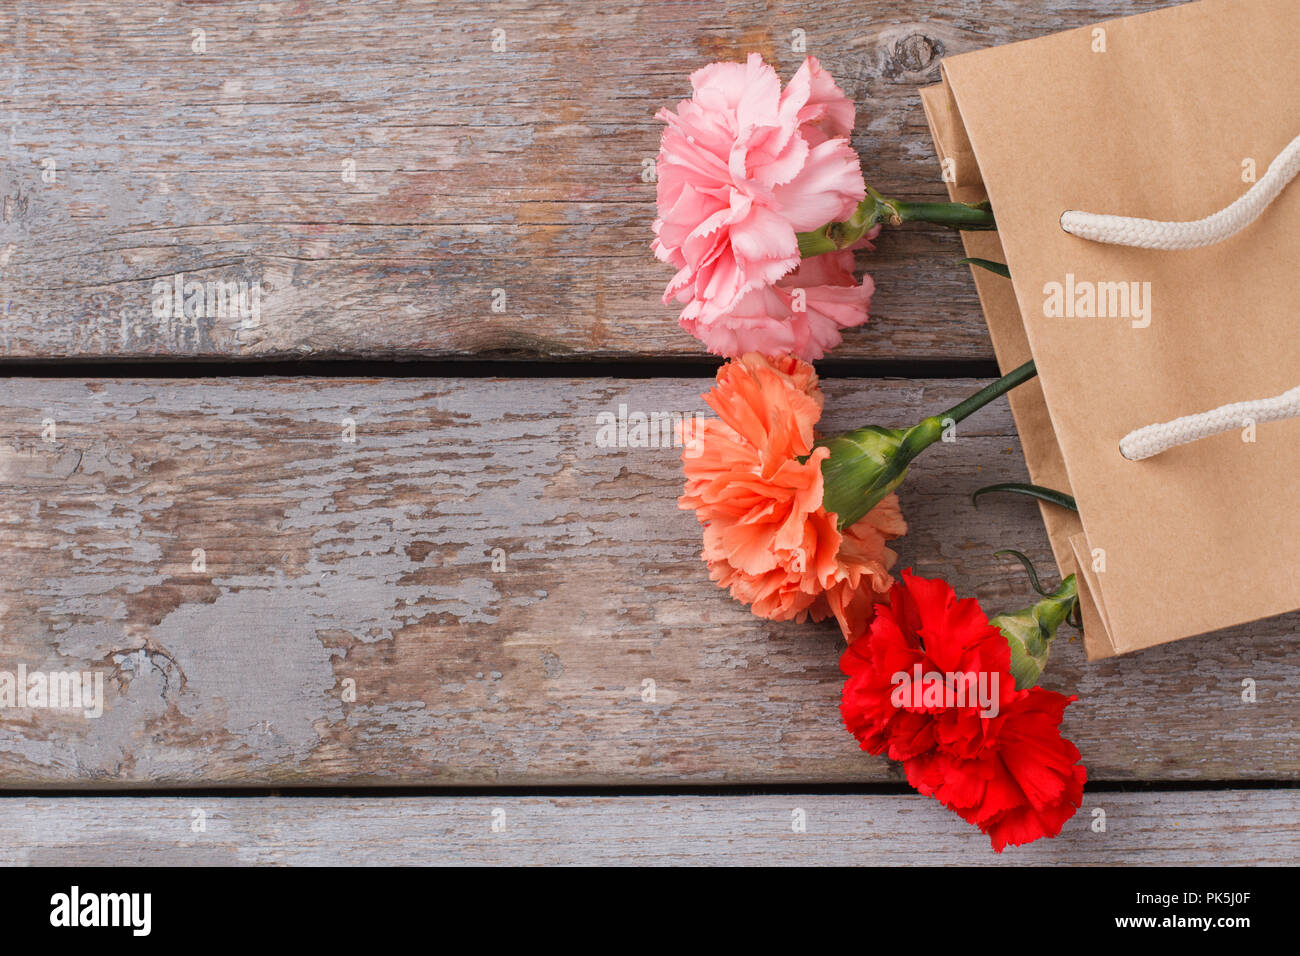 Different colorful carnation flowers in paper bag copyspace old different colorful carnation flowers in paper bag copyspace old wooden table background mightylinksfo